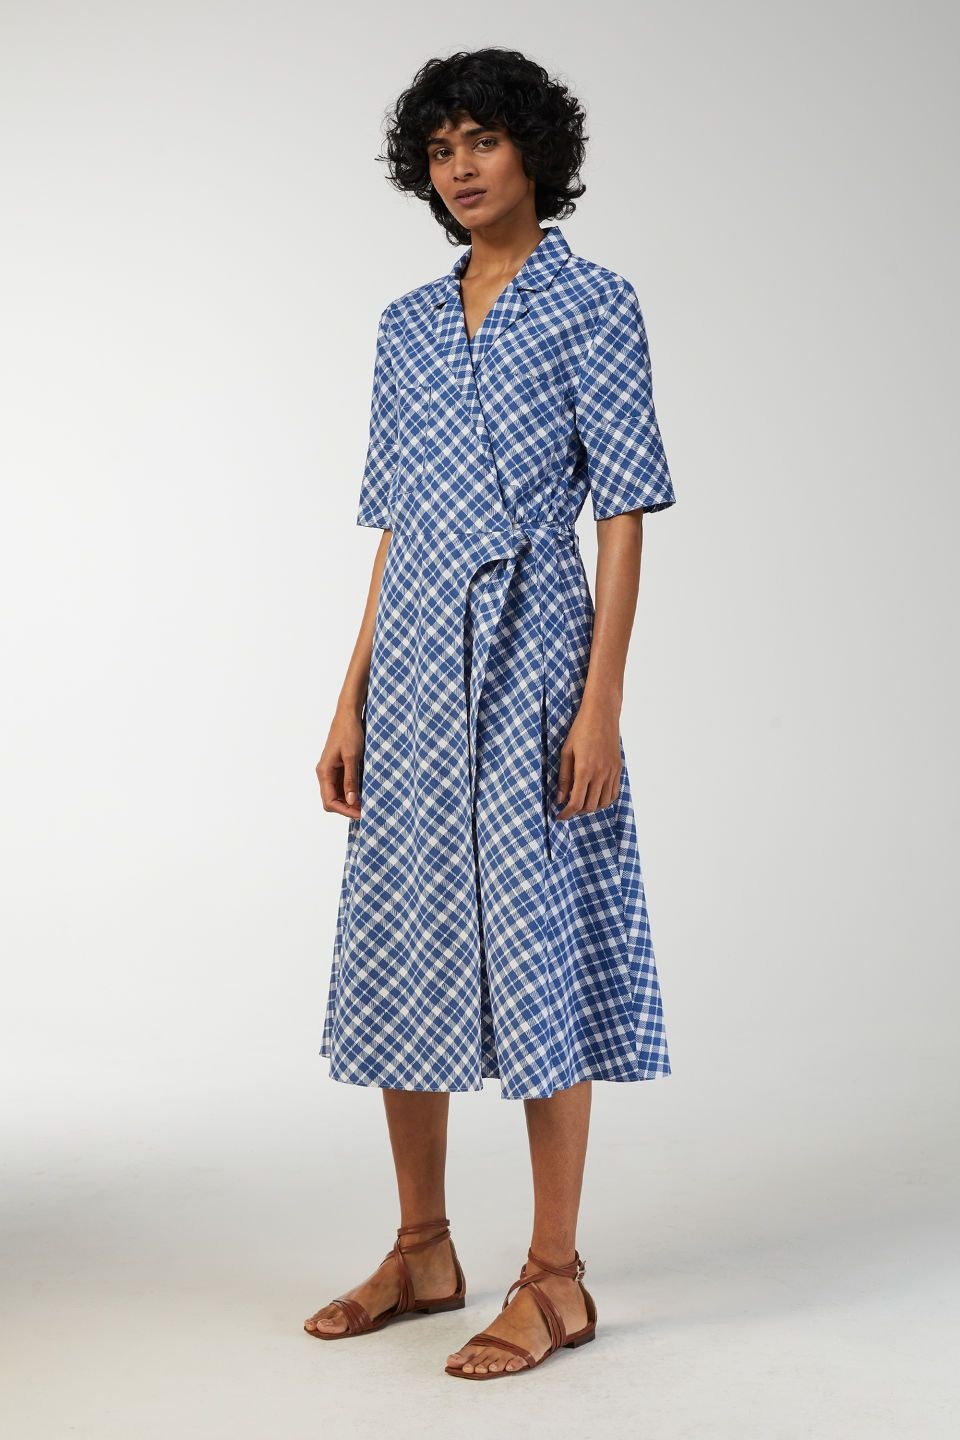 deb8e3ddda51 234128-200O Checked Wrap Dress. With a crisp two-colour check, this wrap  dress is crafted from a plain weave of organic cotton. The short-sleeve top  has a ...